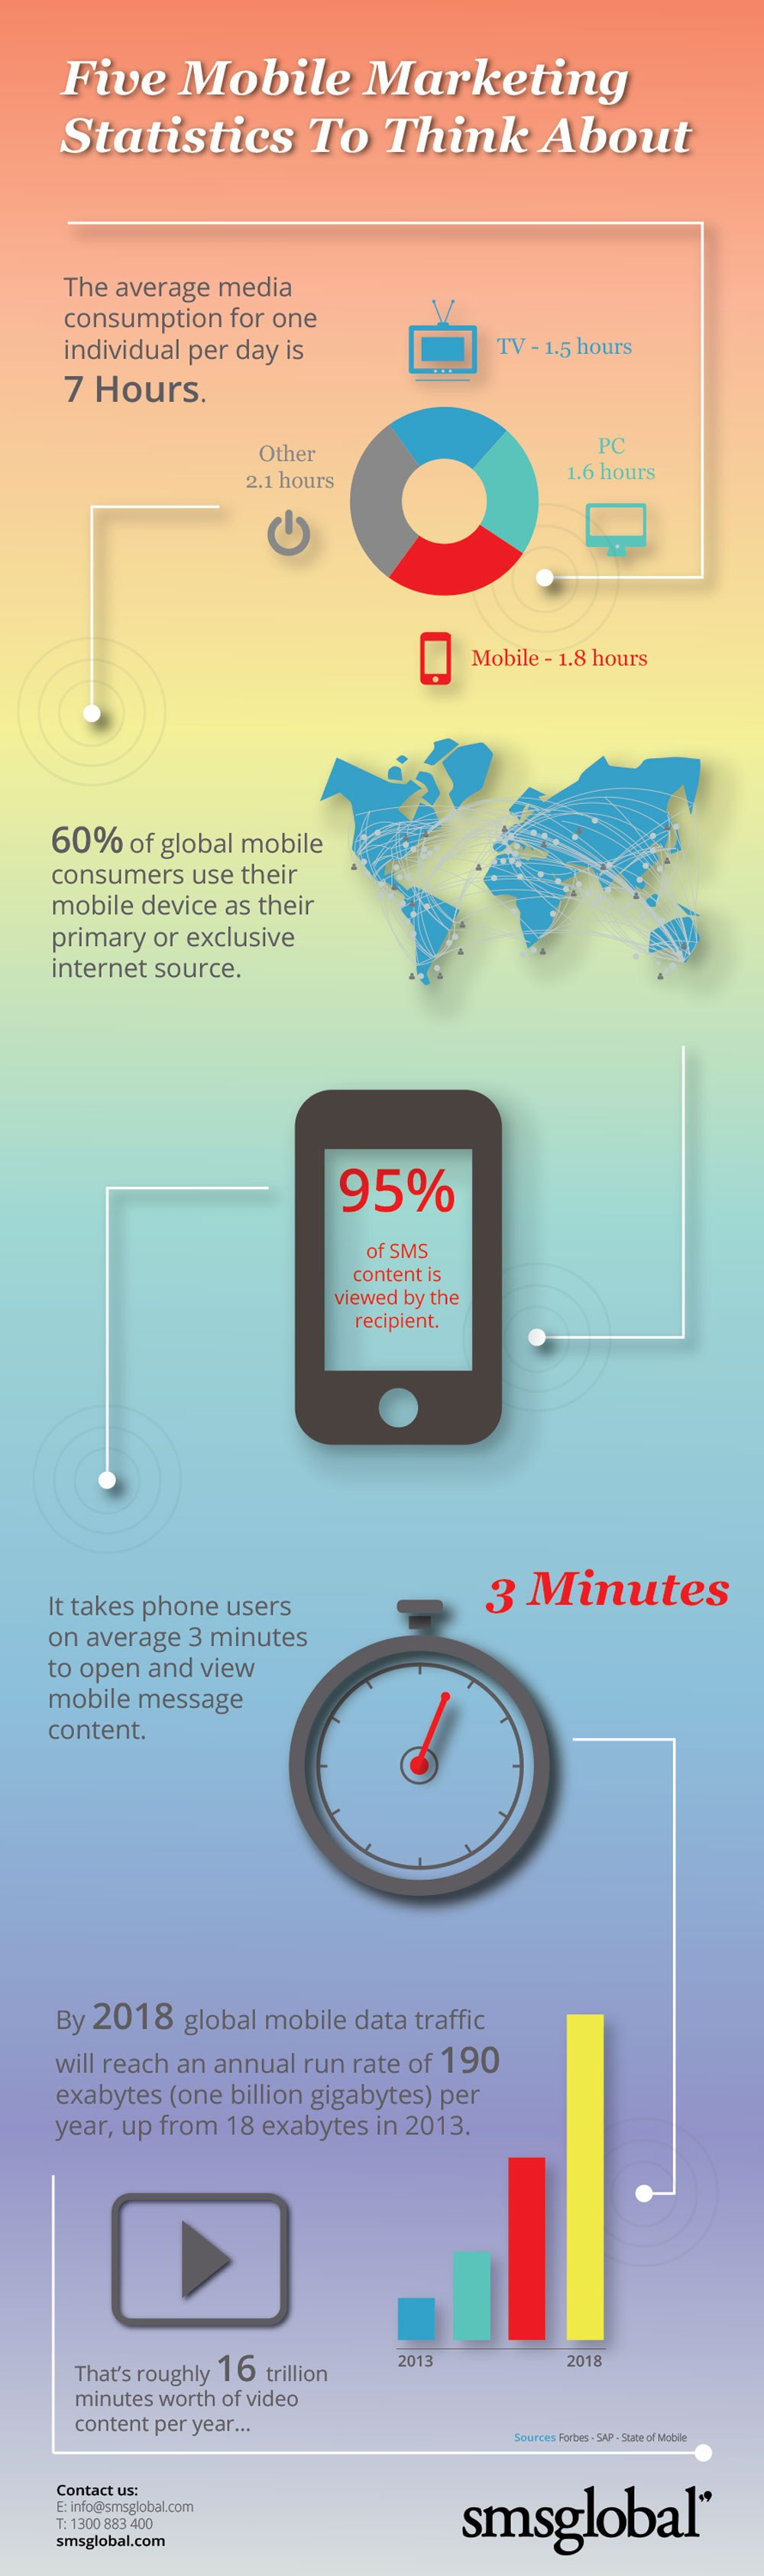 Infographic: Five Mobile Marketing Statistics To Think About